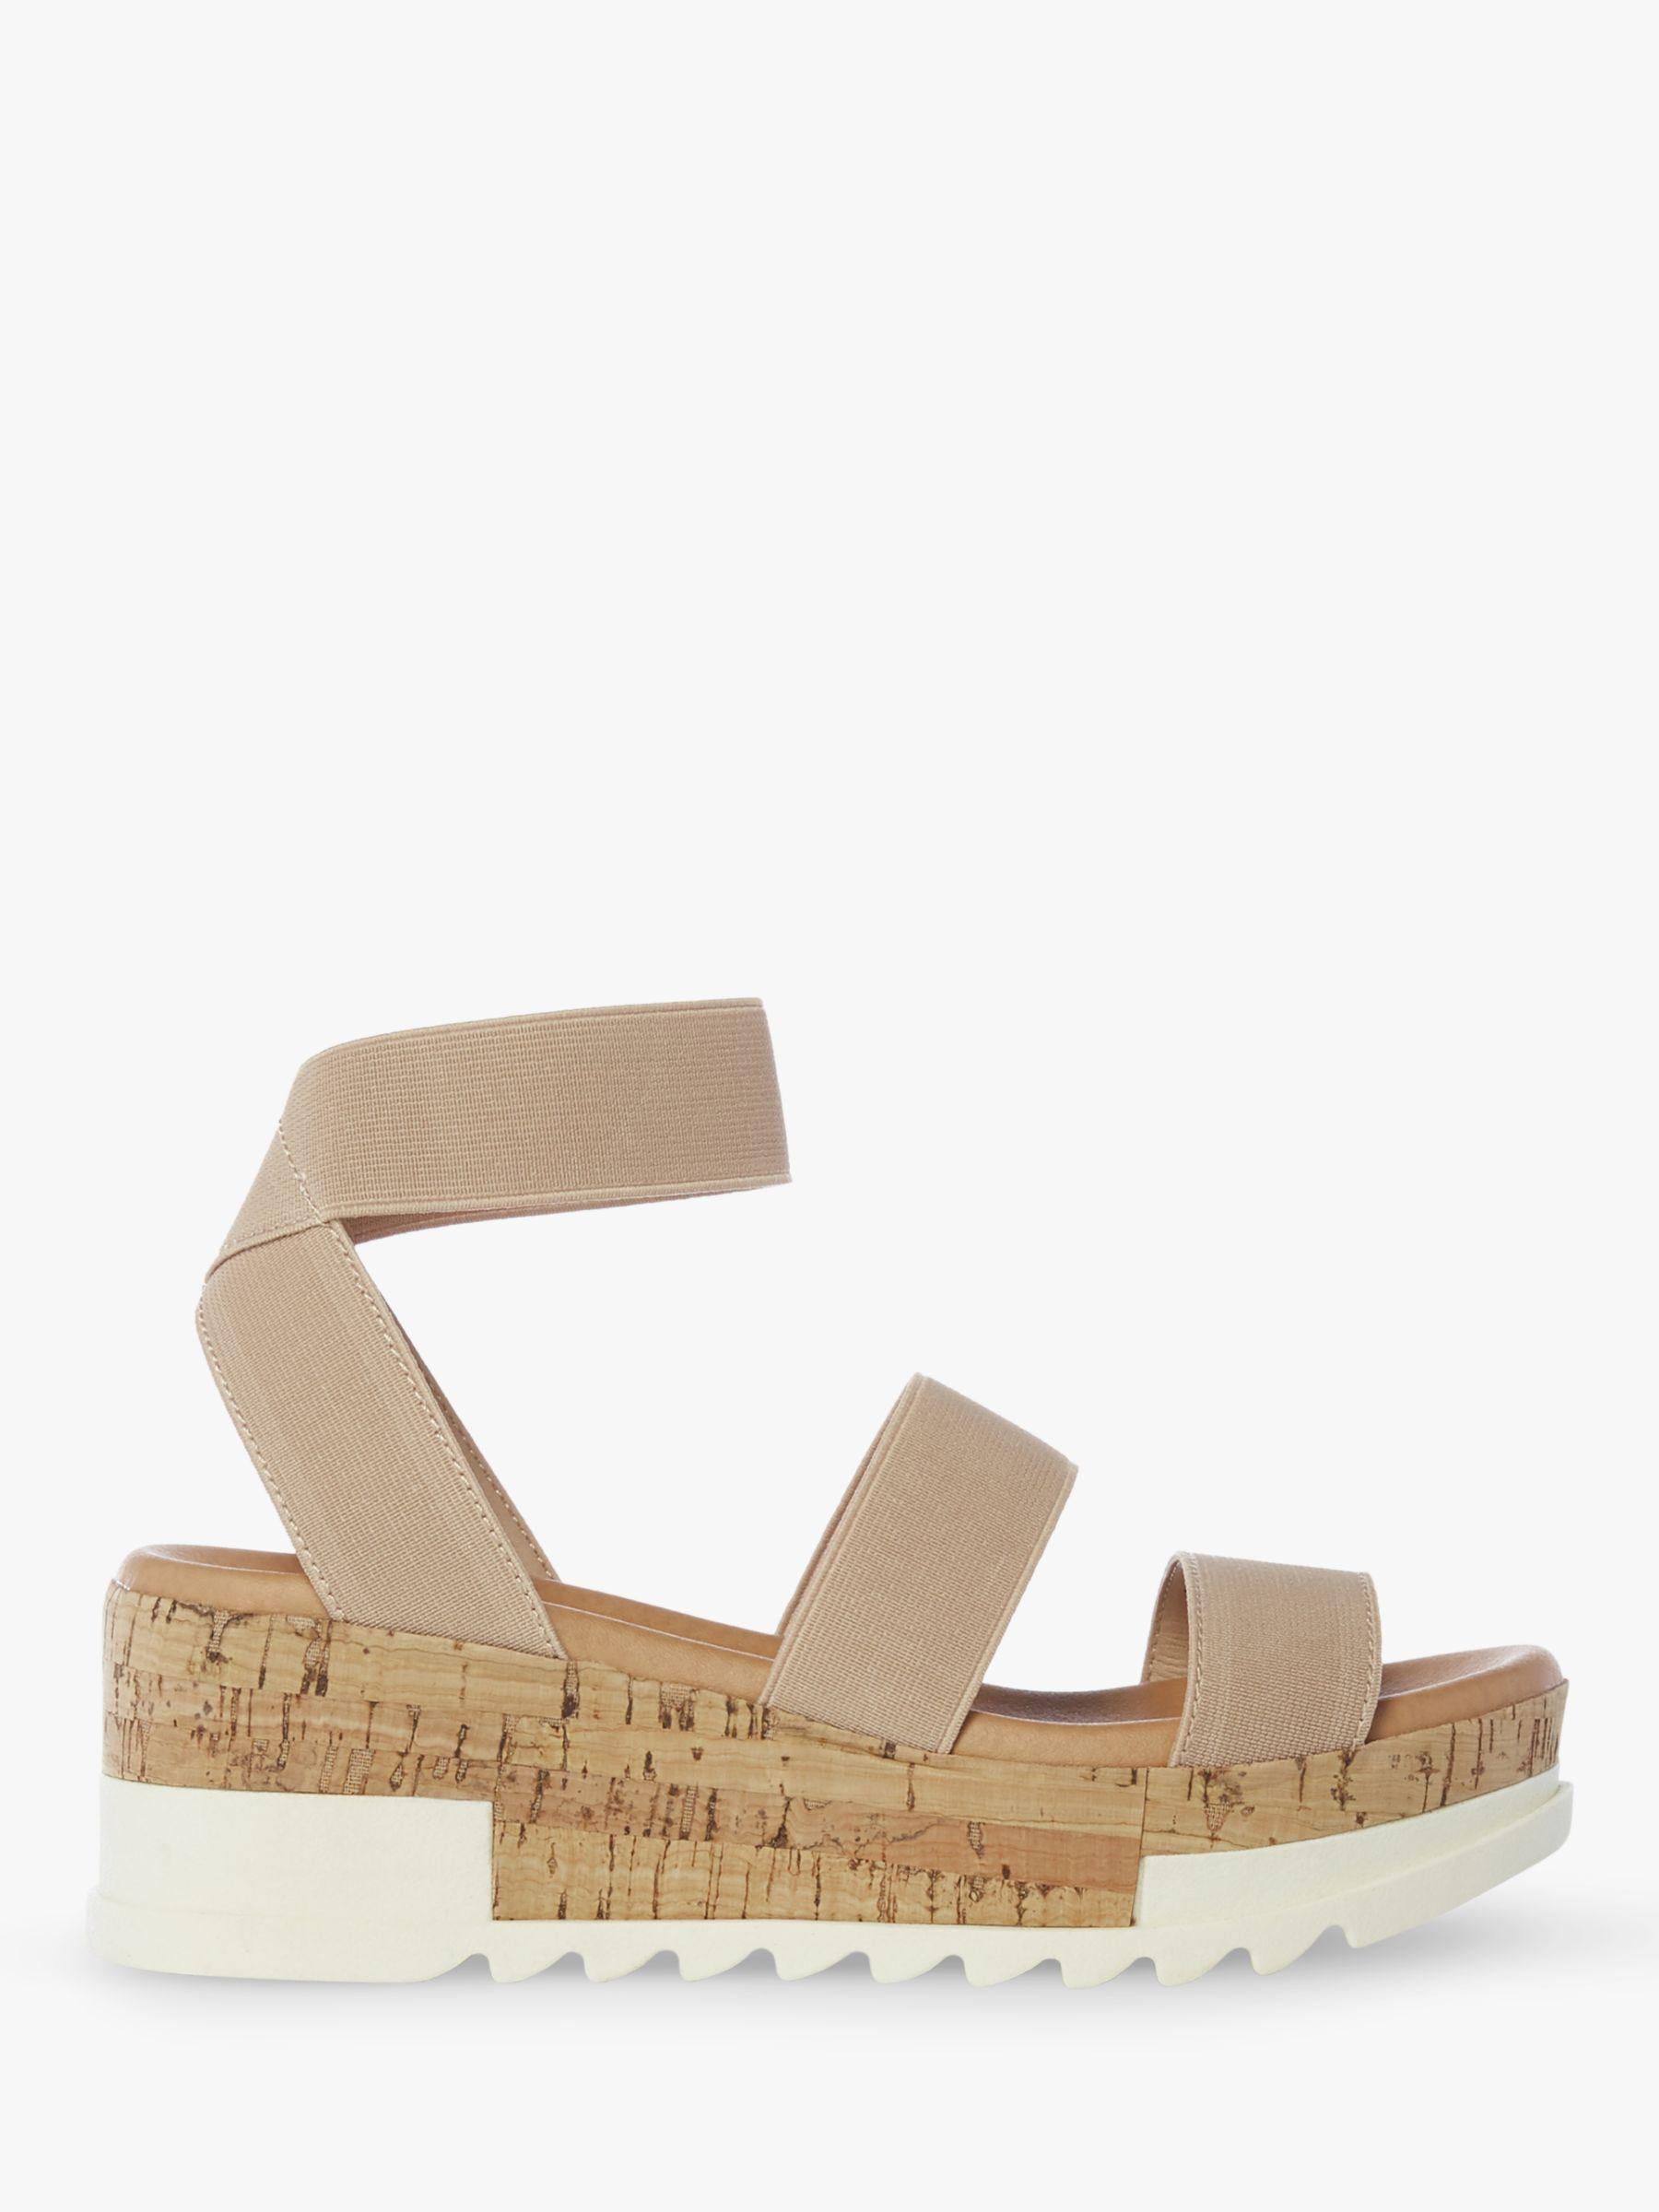 19cd2415f017 Steve Madden. Women s Natural Bandi Flatform Sandals. £80 From John Lewis  and Partners